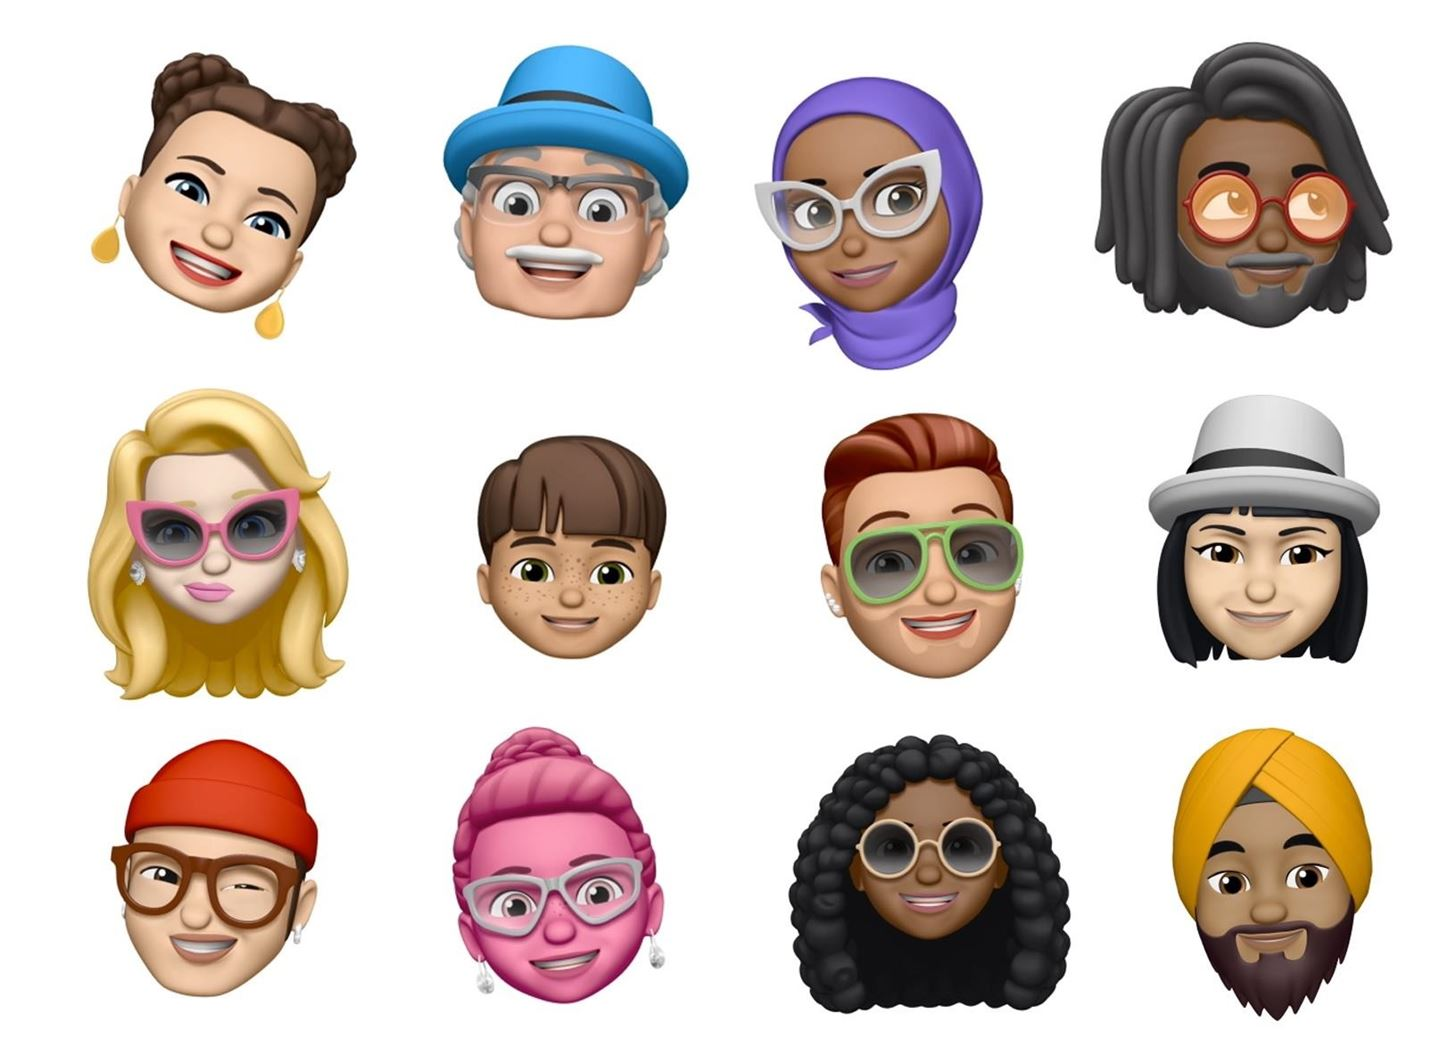 53 Cool New iOS 12 Features You Didn't Know About